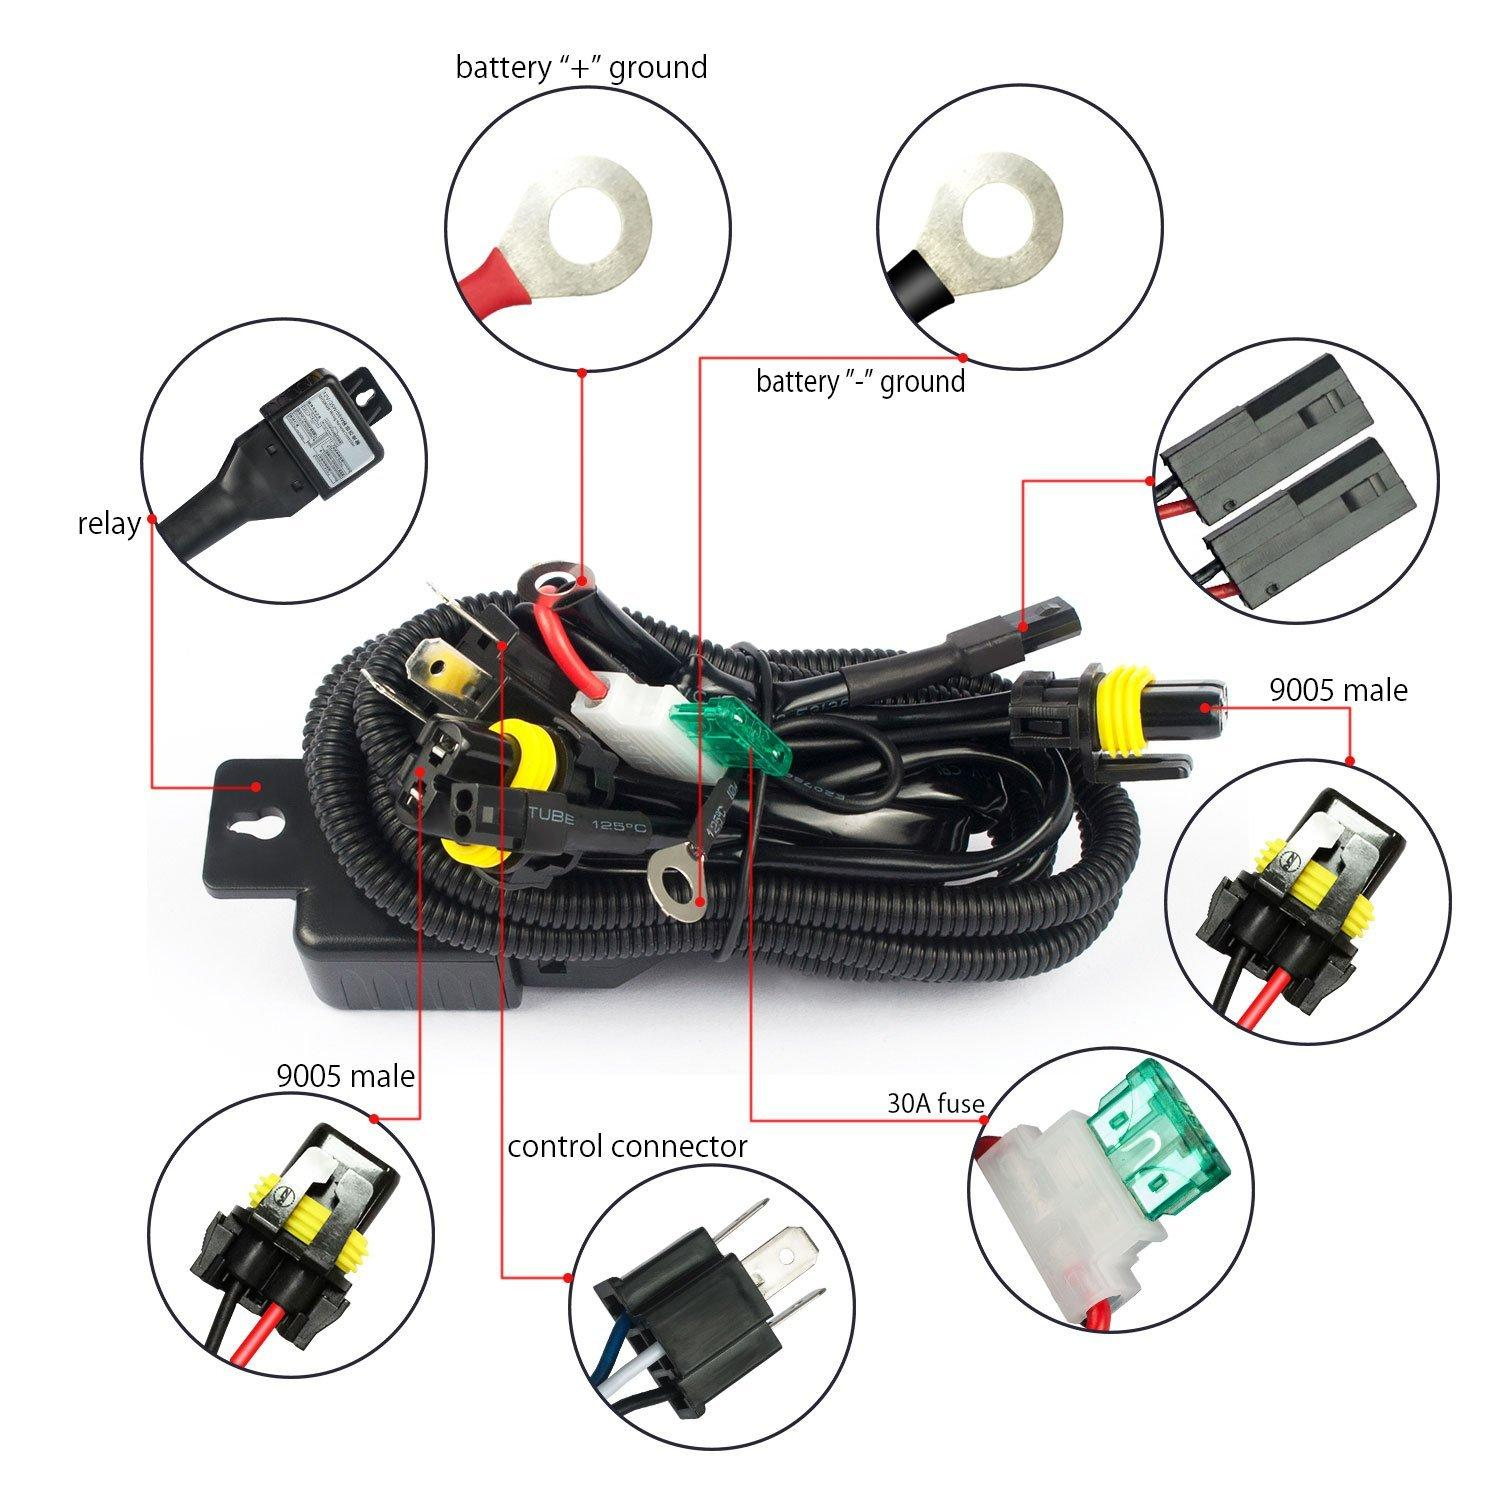 H4 Hid Wiring Harness - Wiring Diagram M8 H Wiring Harness Adapter Diagram on